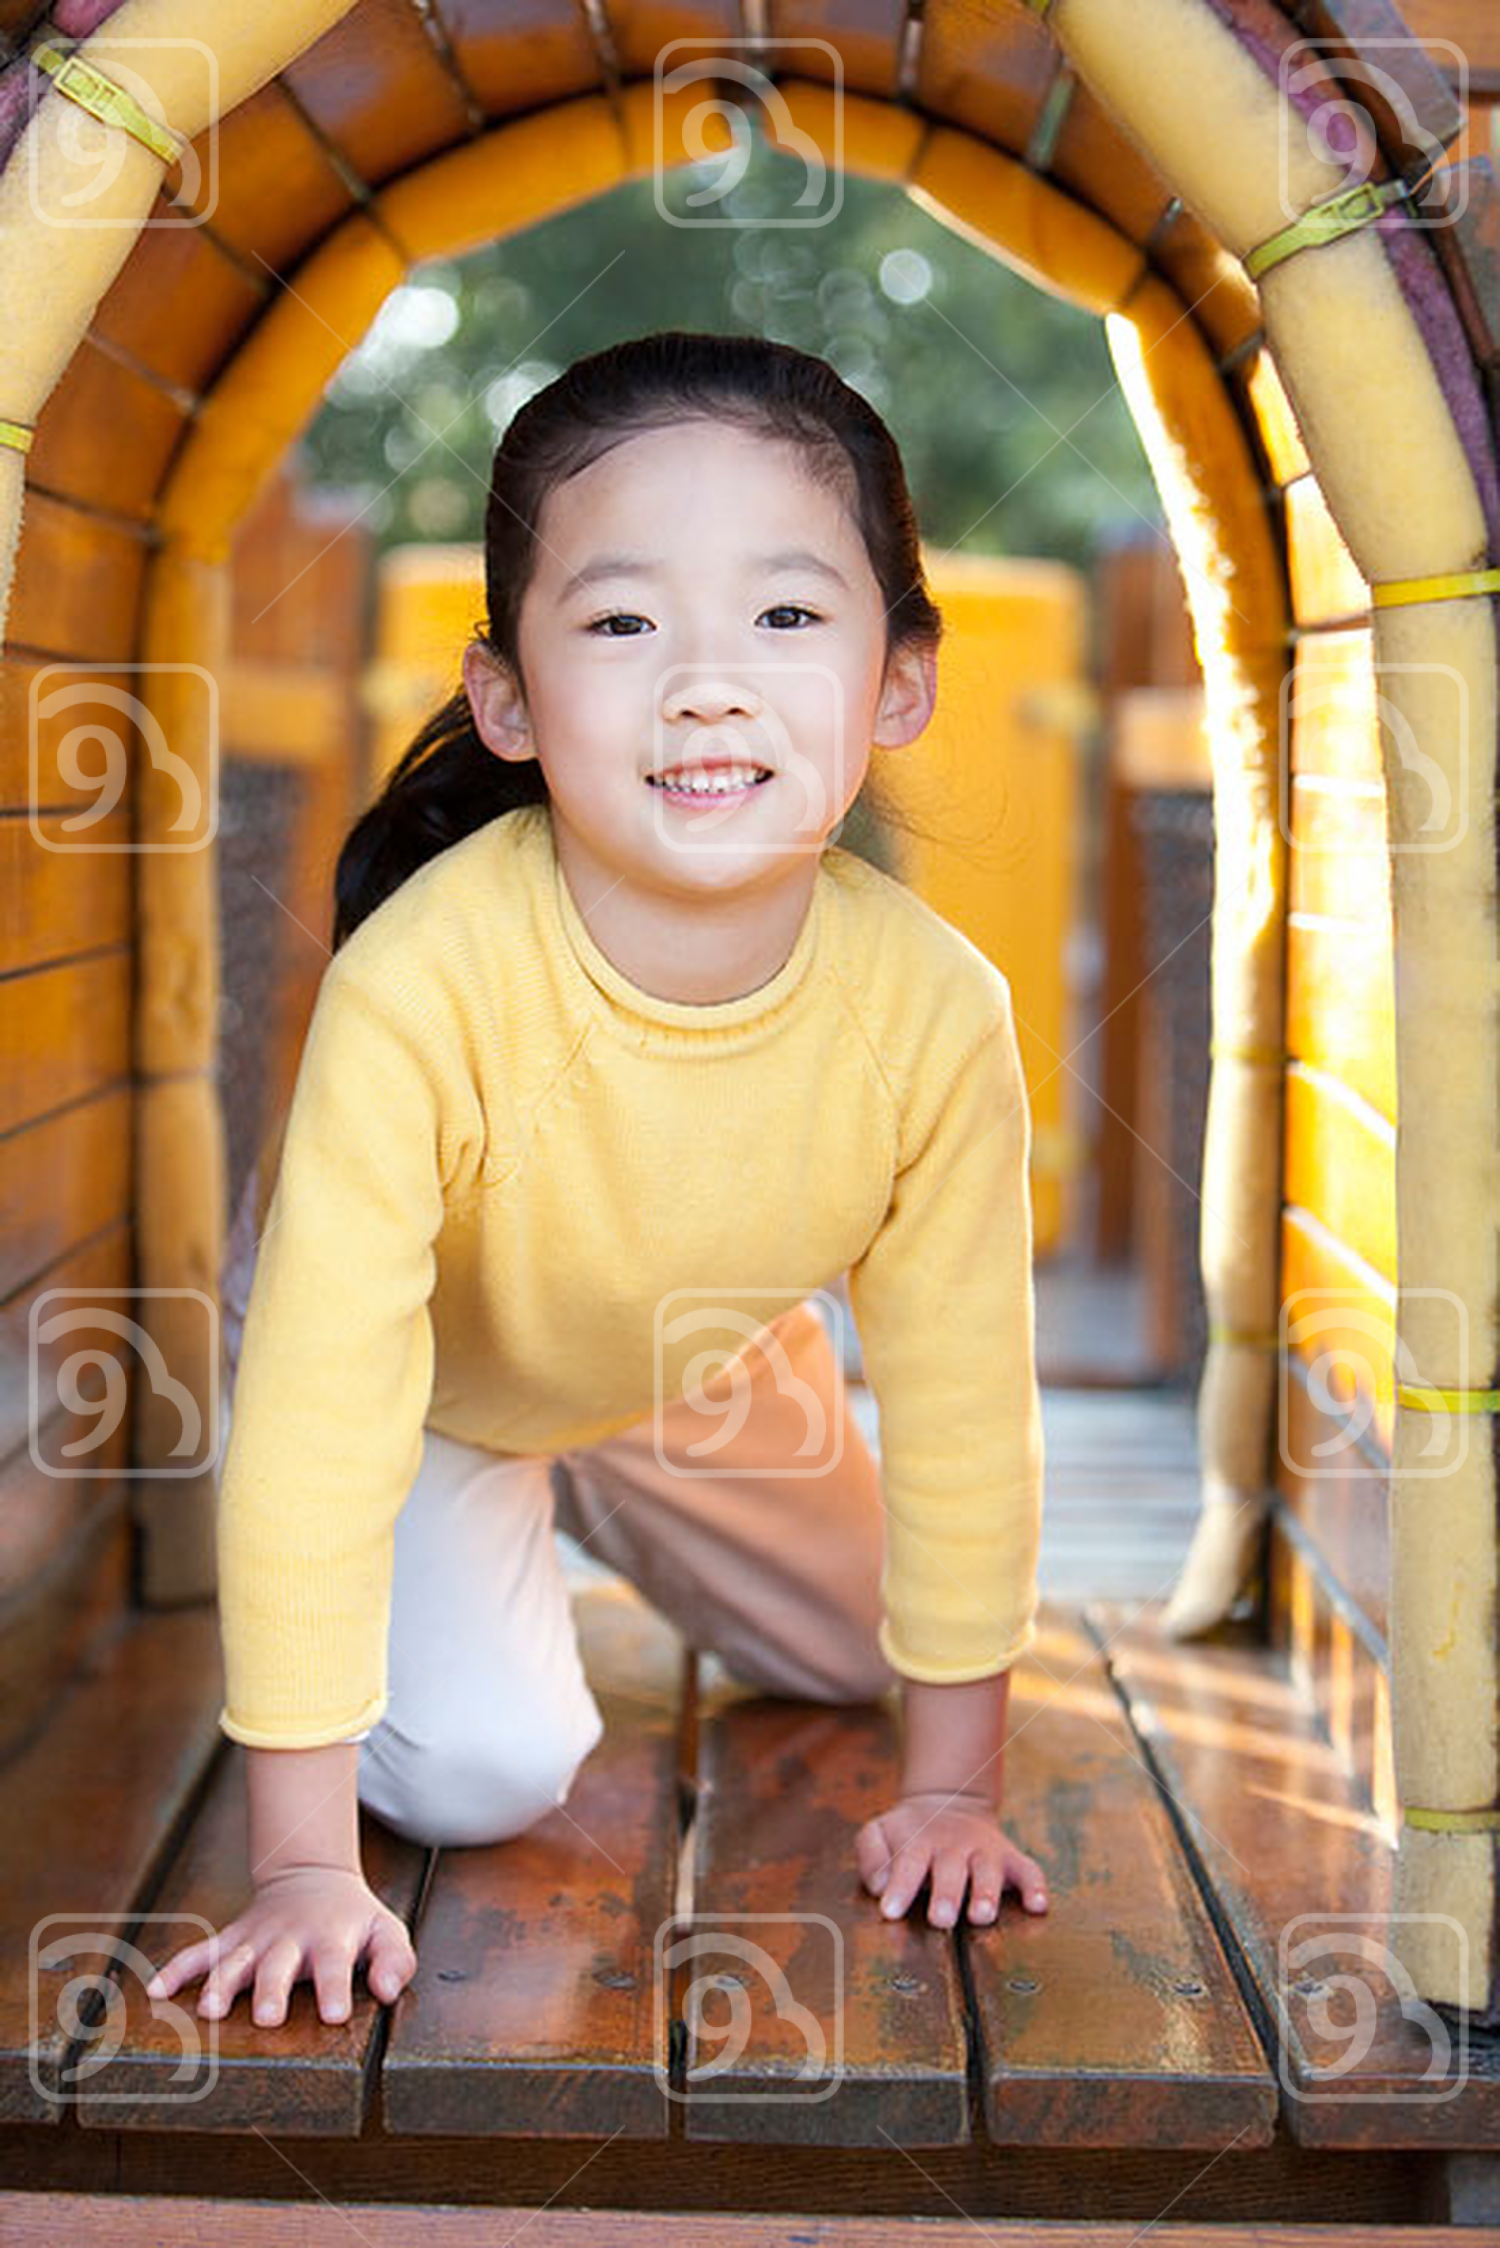 Chinese girl crawling through tunnel in playground